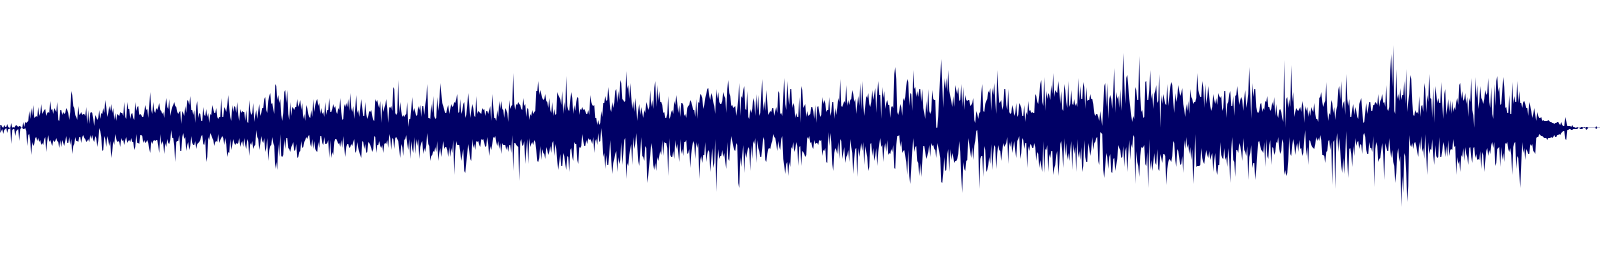 waveform of track #140070